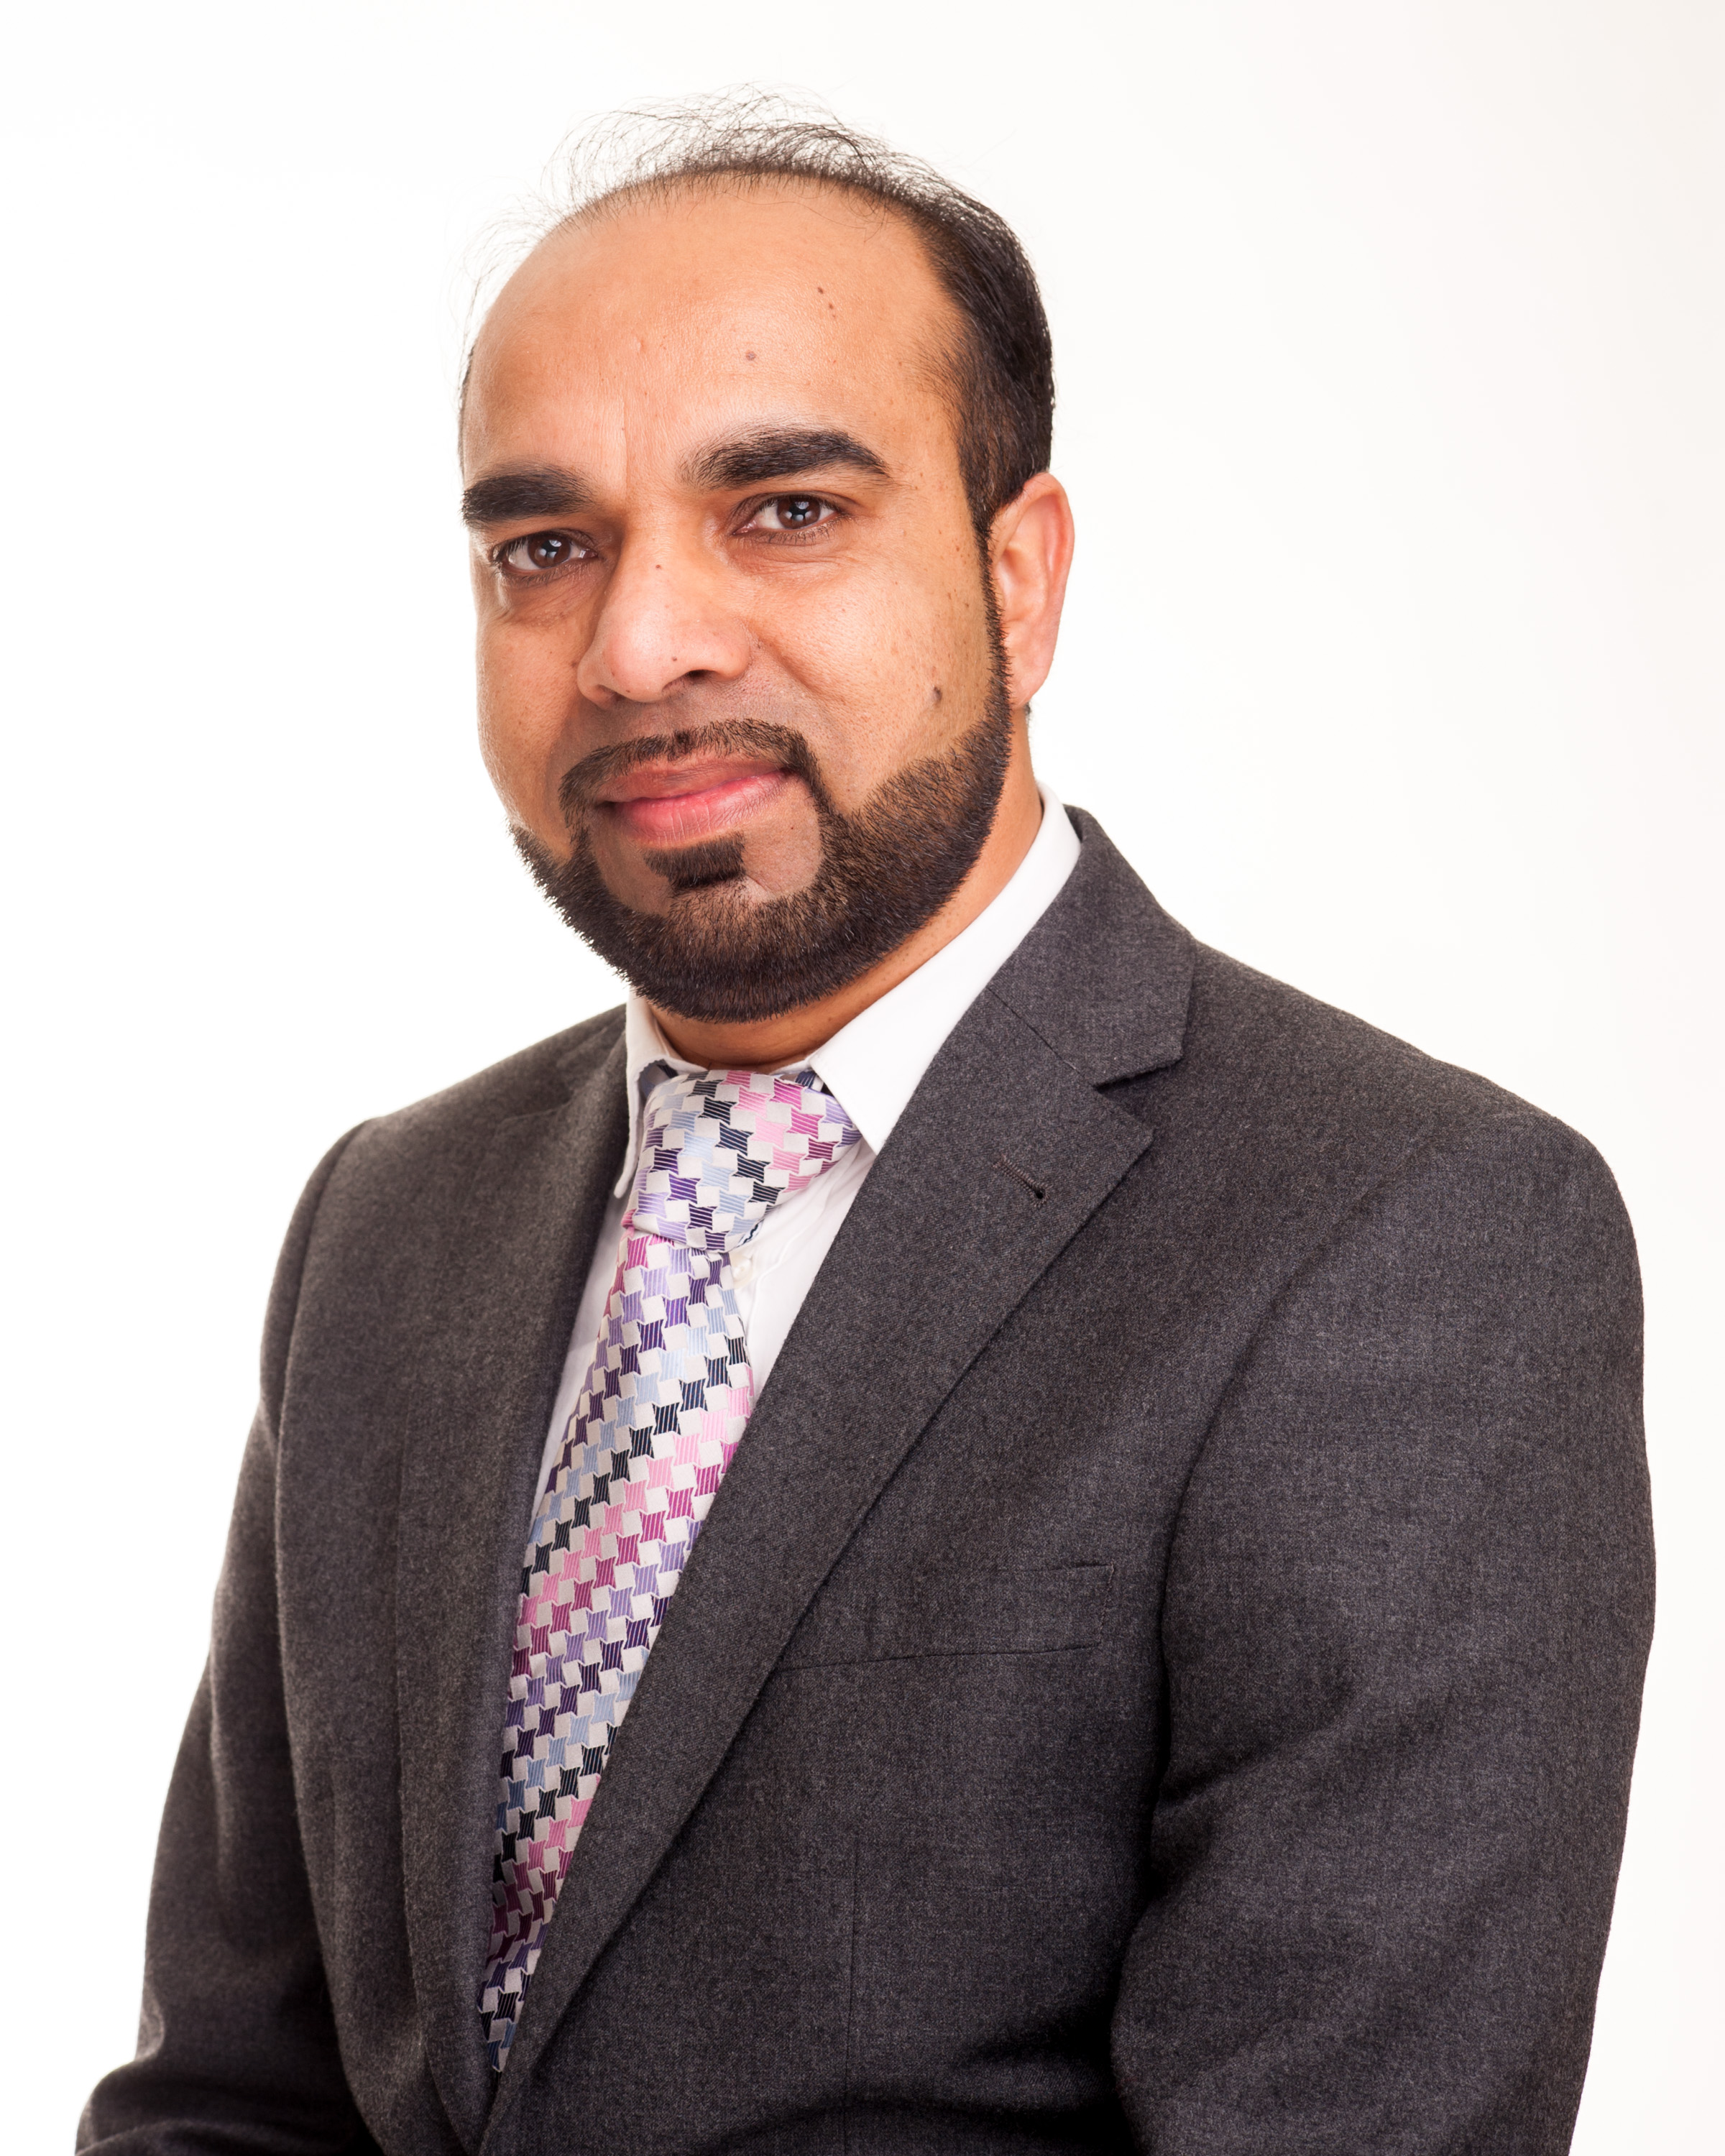 """We provide each student with an individual programme of work designed to help build their confidence, extend their knowledge and develop learning skills."" - Khalid Mahmood, Principal -"